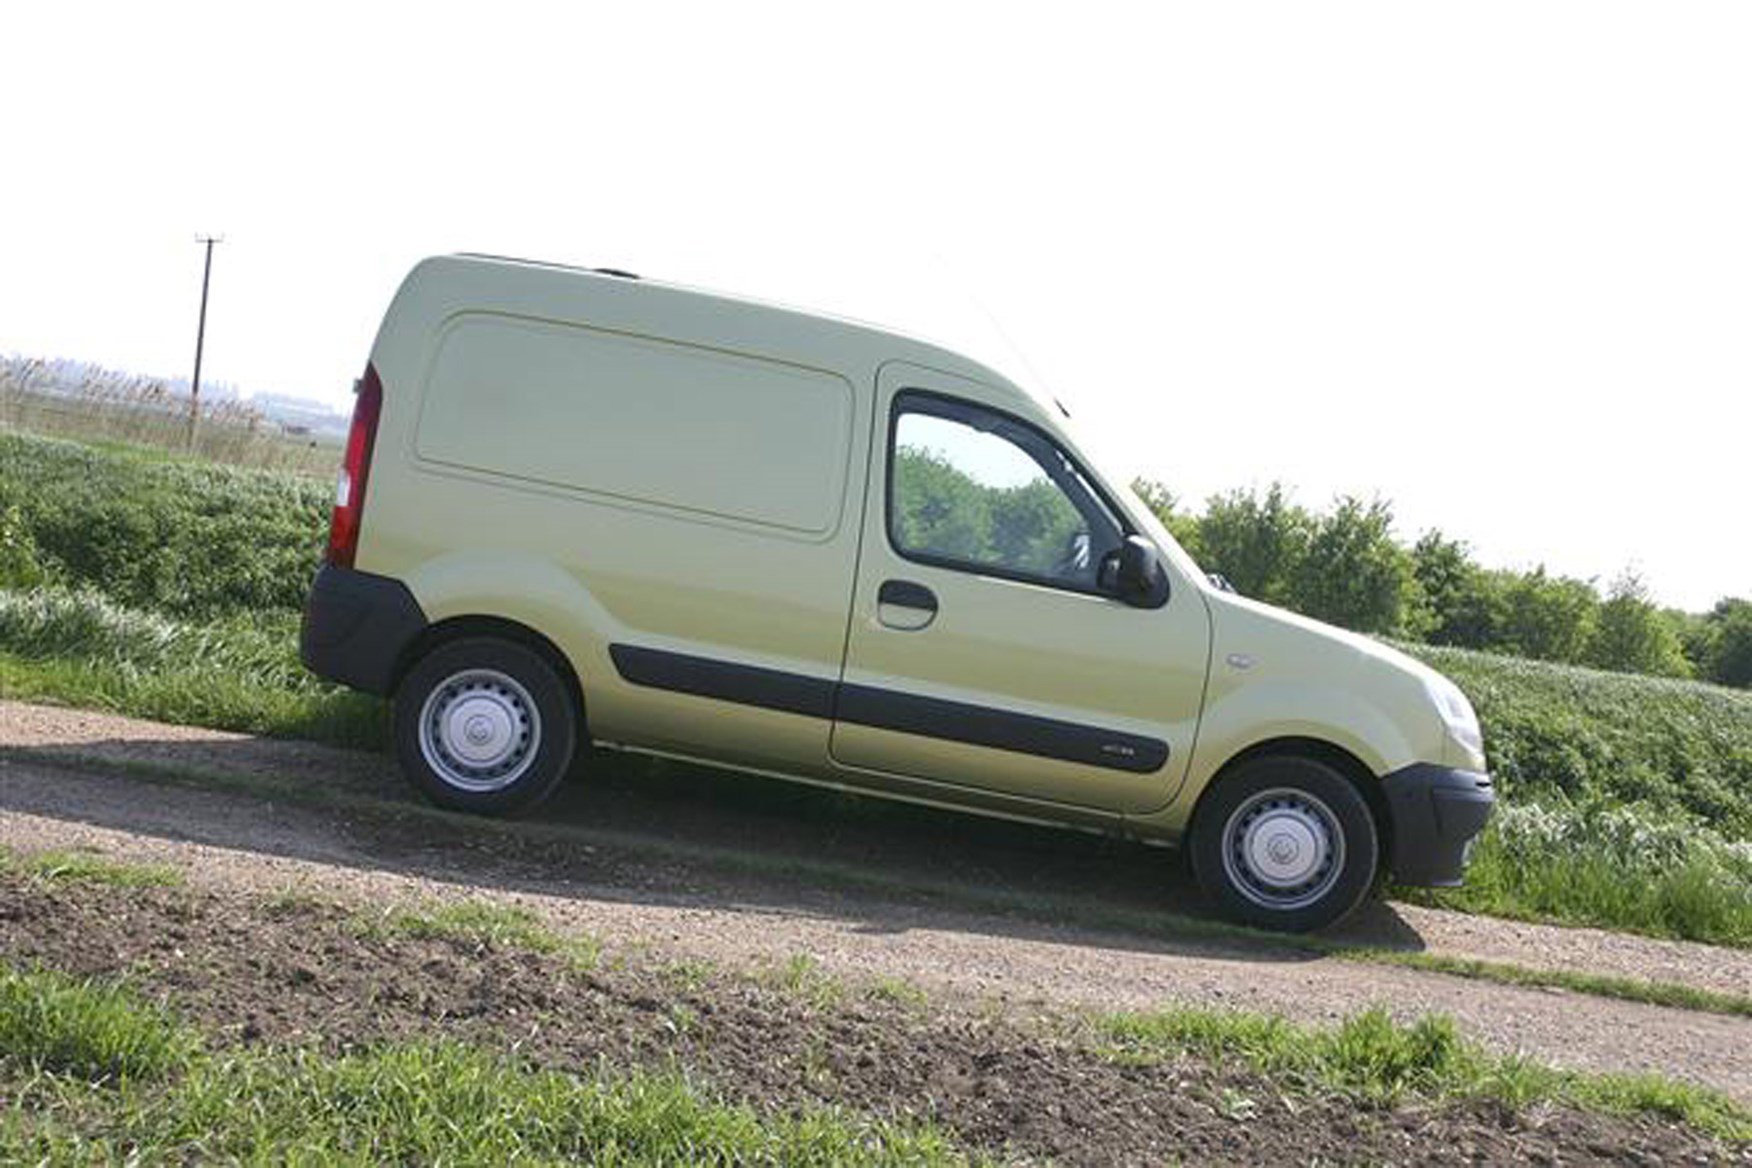 Nissan Kubistar review on Parkers Vans - on the road